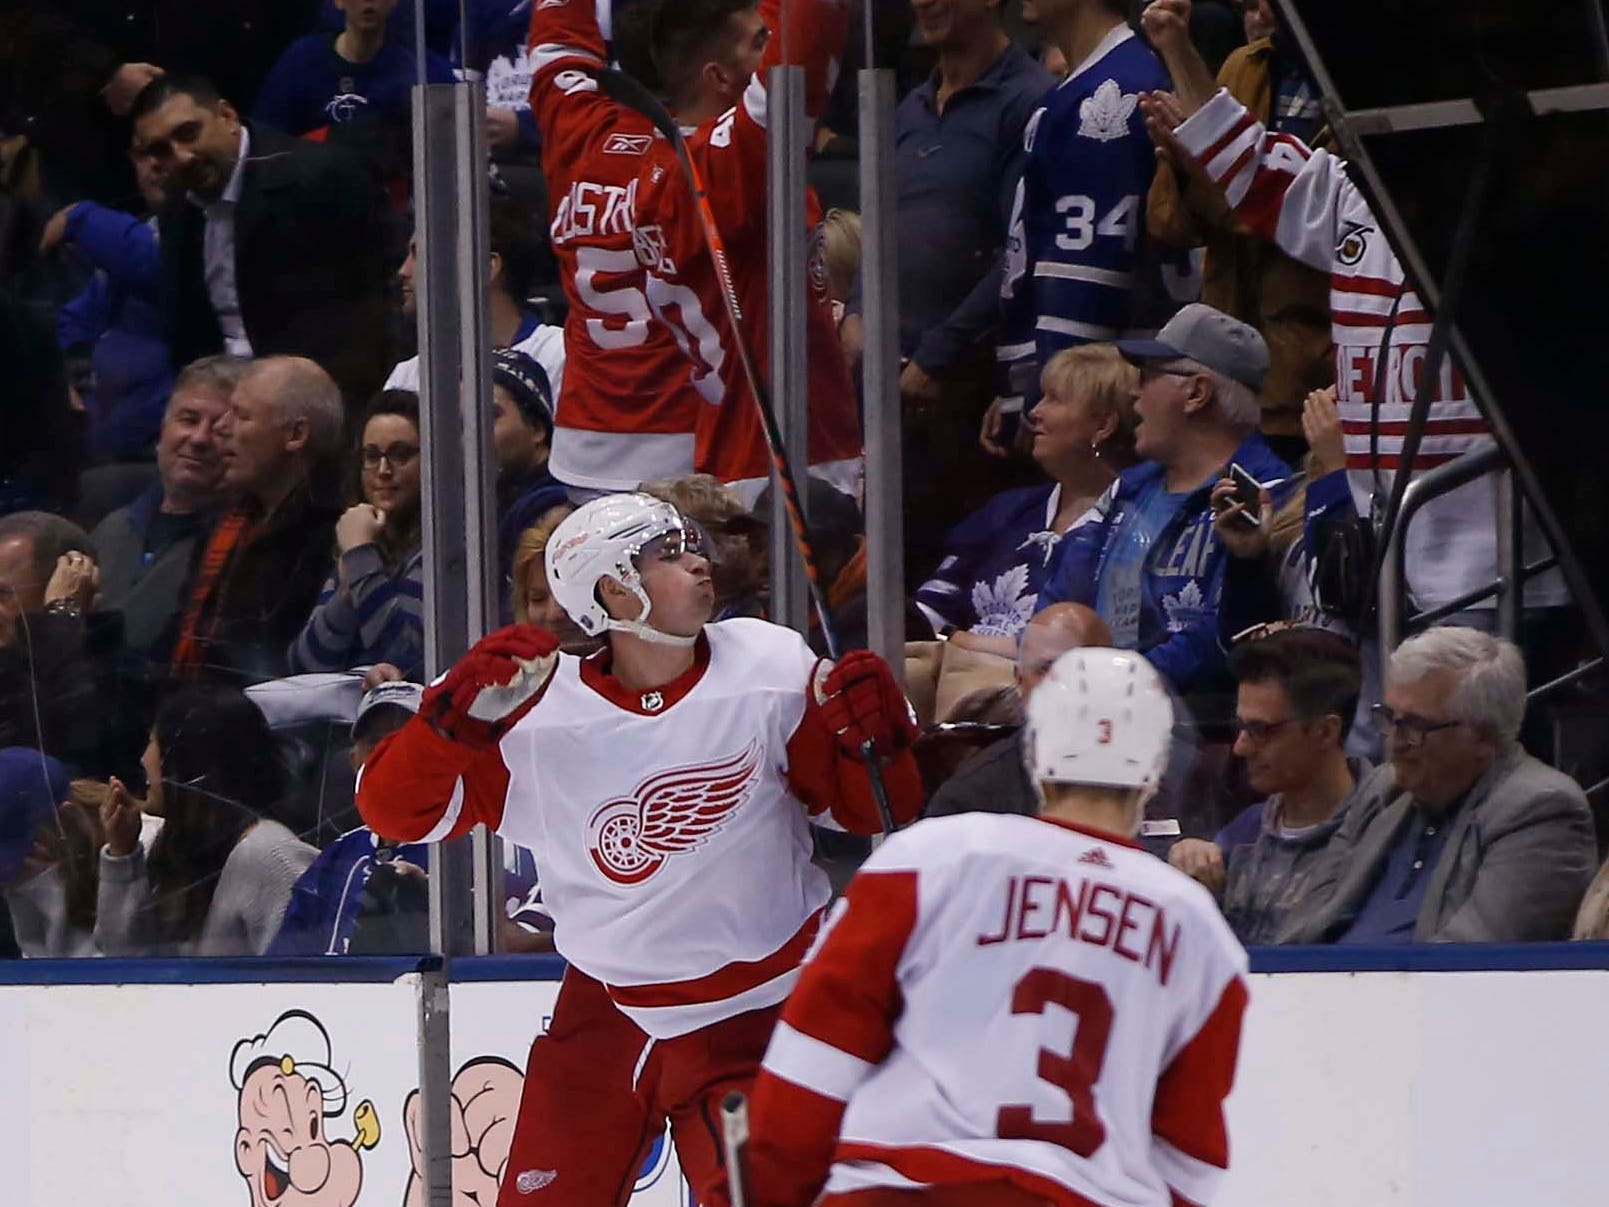 Detroit Red Wings forward Dylan Larkin celebrates his winning goal against the Toronto Maple Leafs at Scotiabank Arena, Thursday, Dec. 6, 2018.